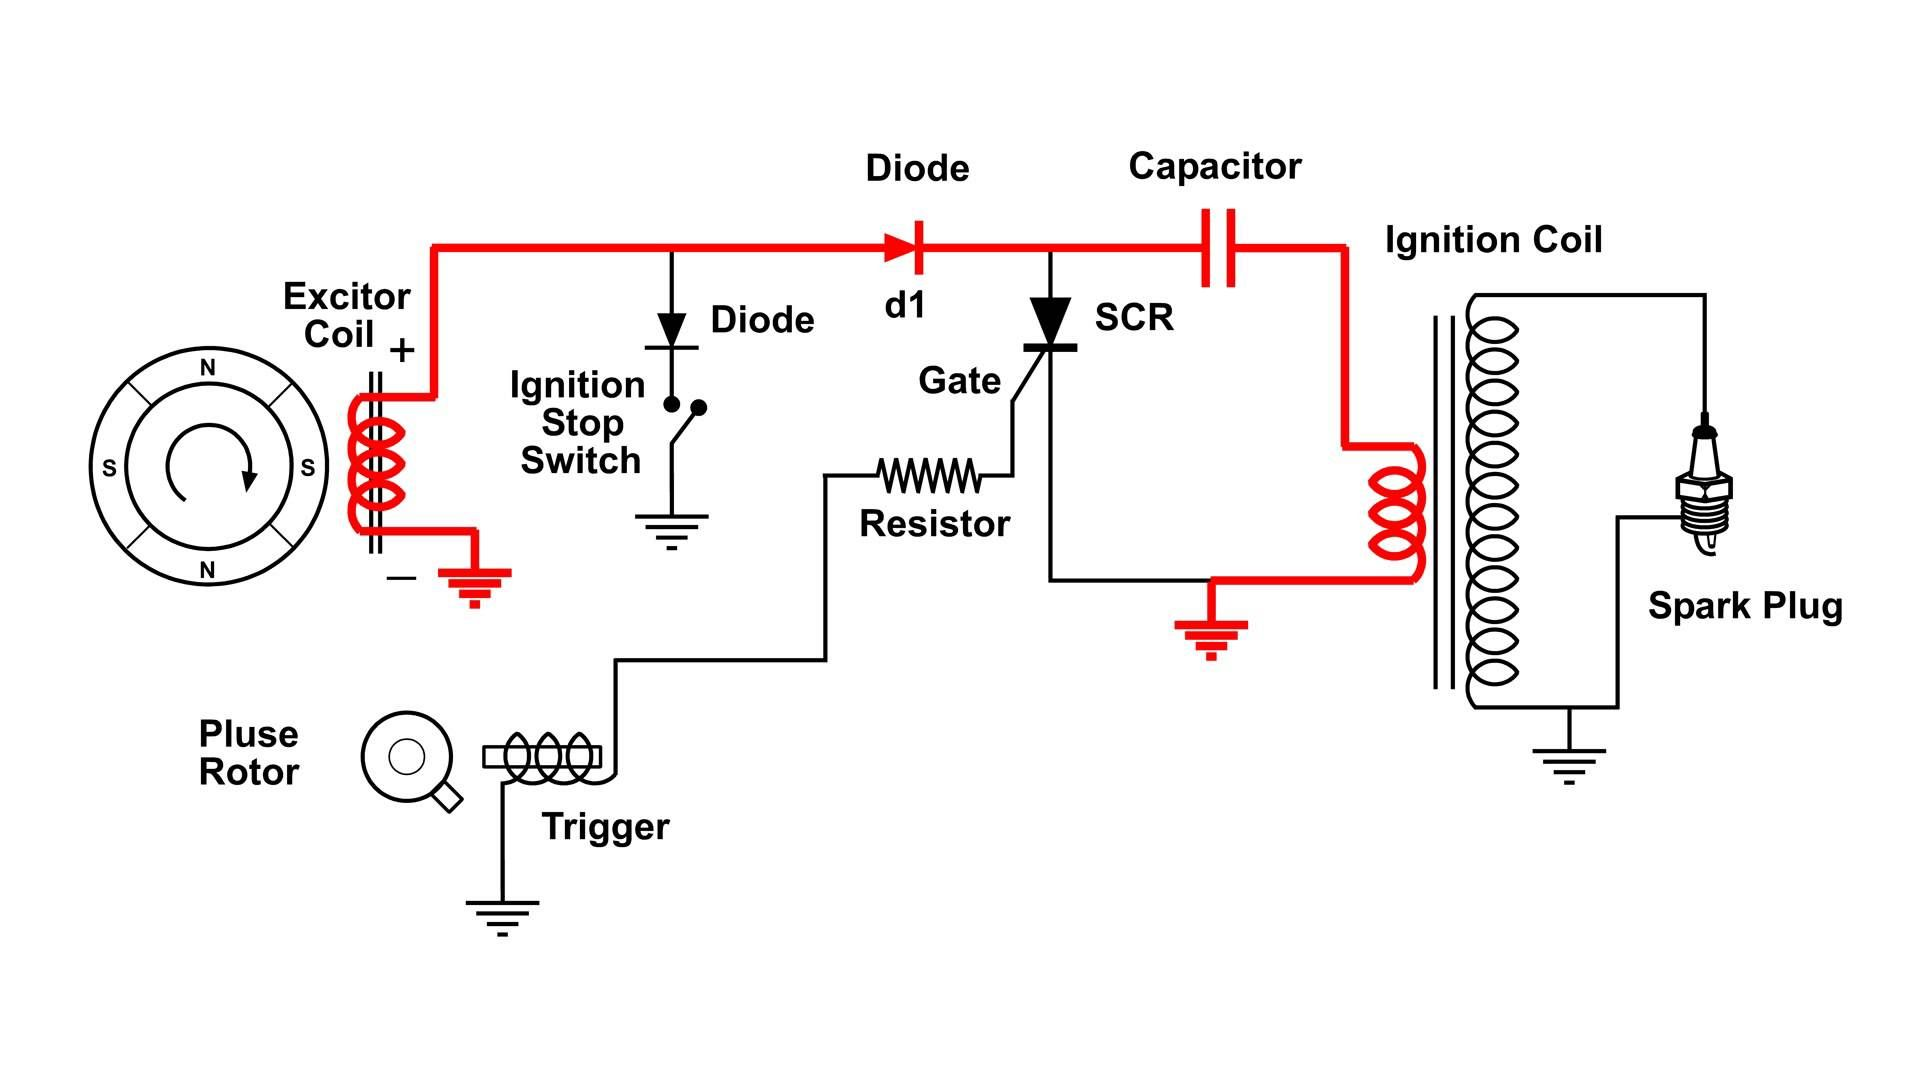 Cdi Capacitor Discharge Ignition Circuit Demo Auto Accesories Quartz Crystal Sine Wave Oscillator Basiccircuit